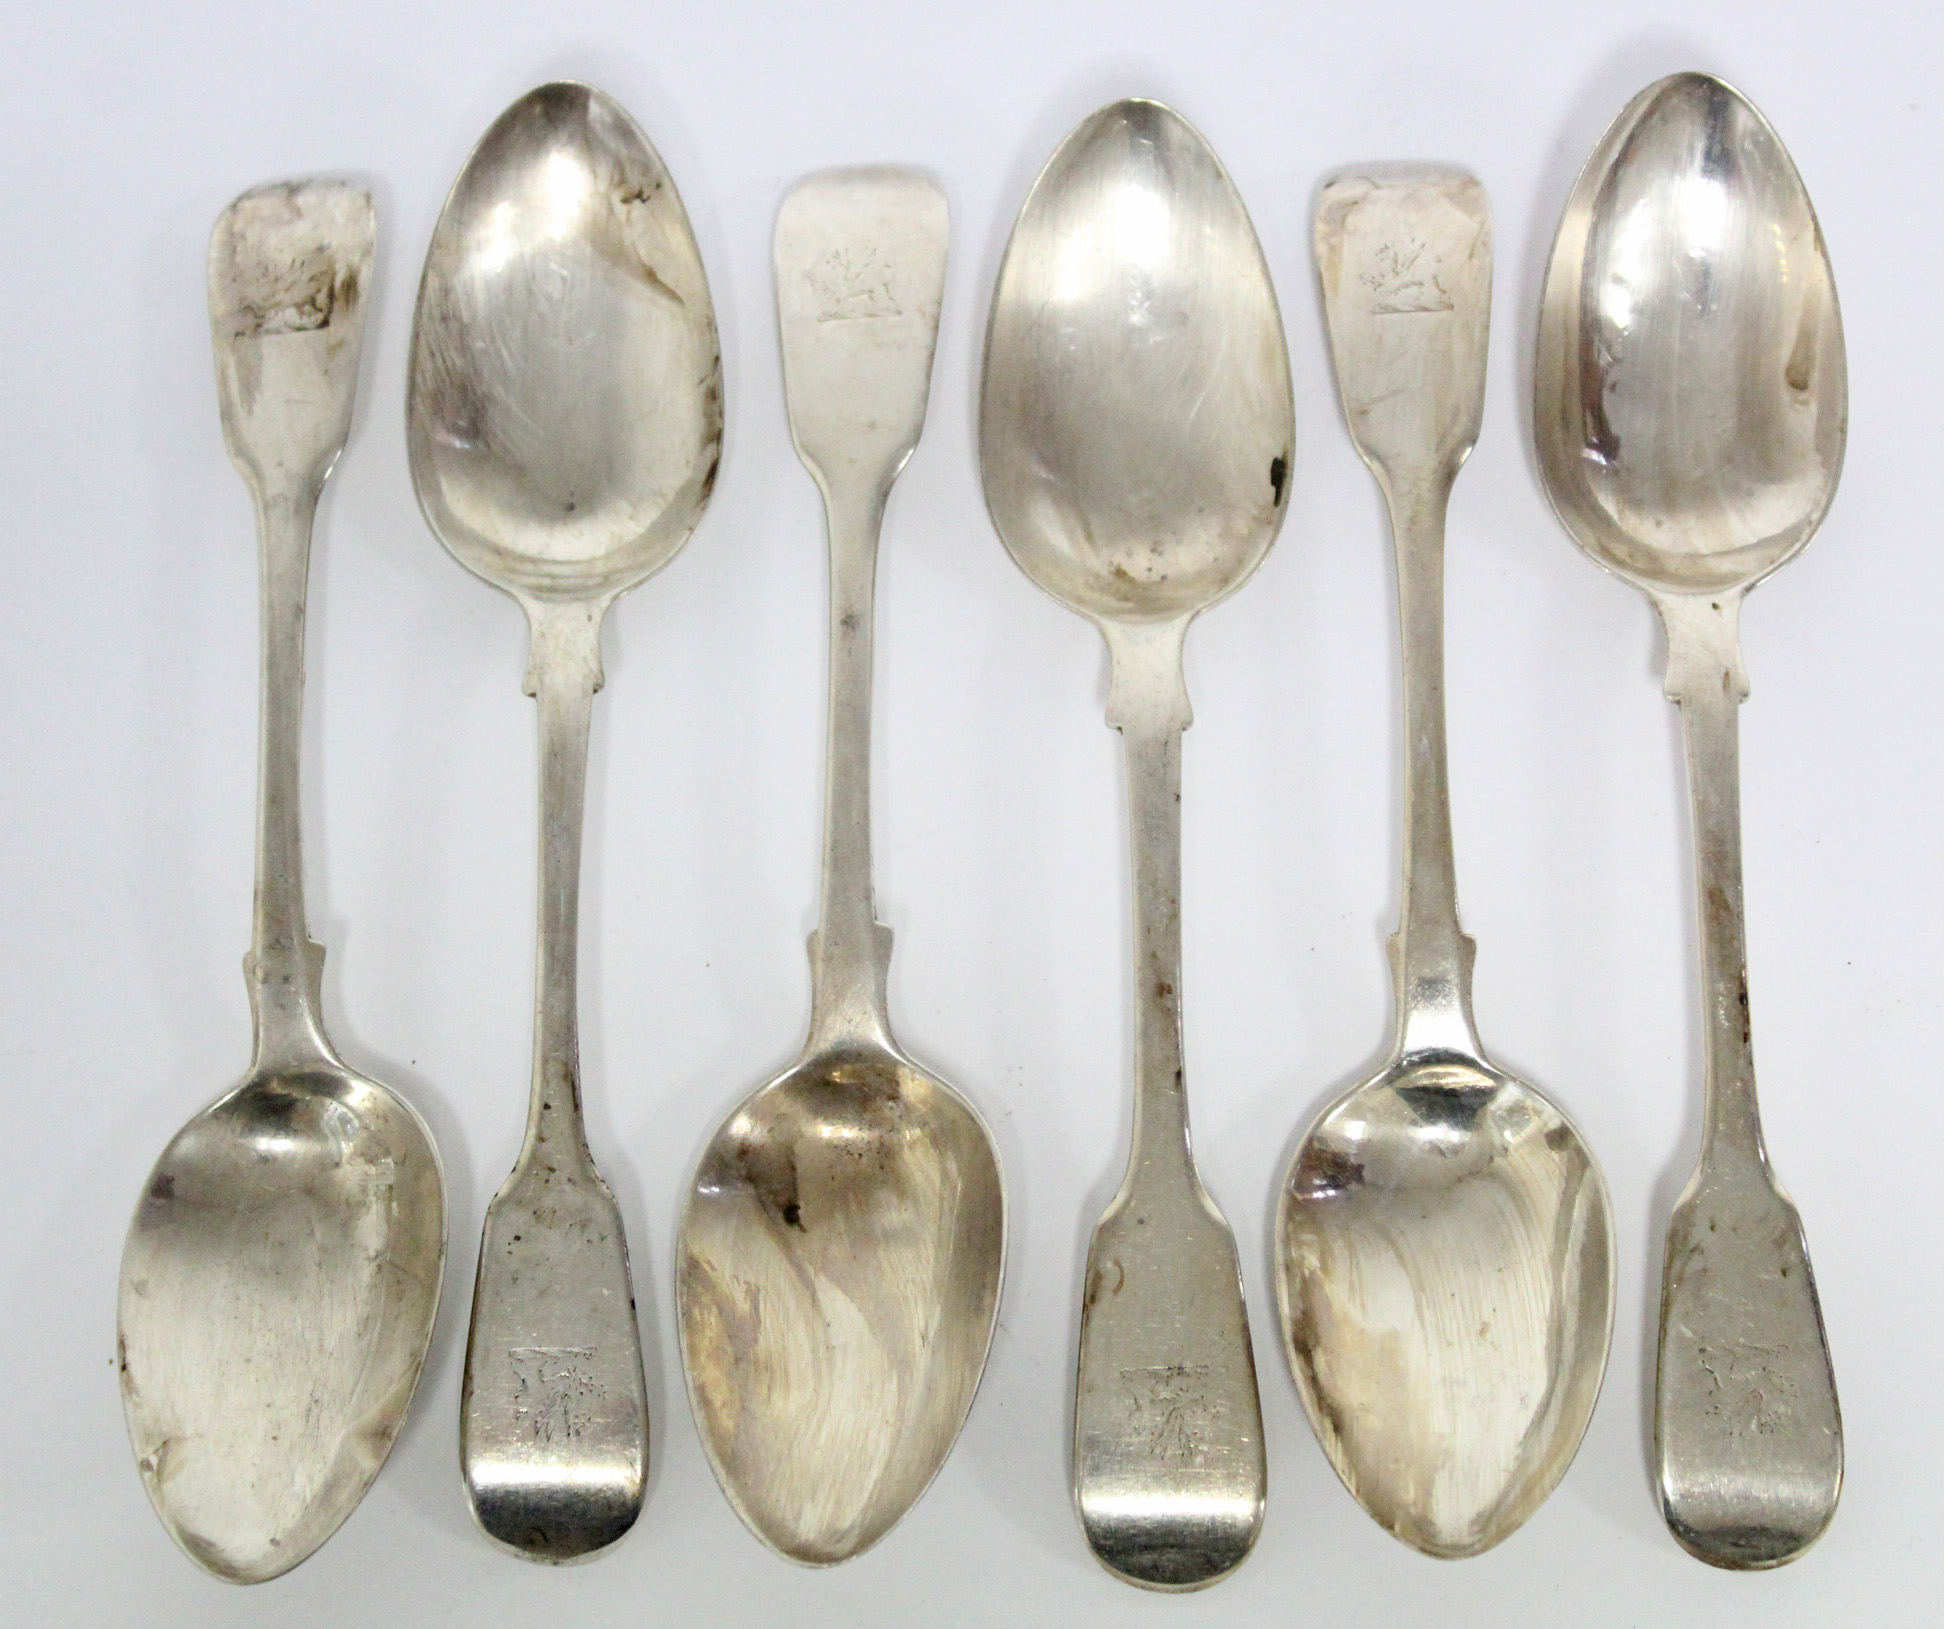 Six William IV Fiddle pattern dessert spoons, London 1831 by William Chawner II. (8½ oz).